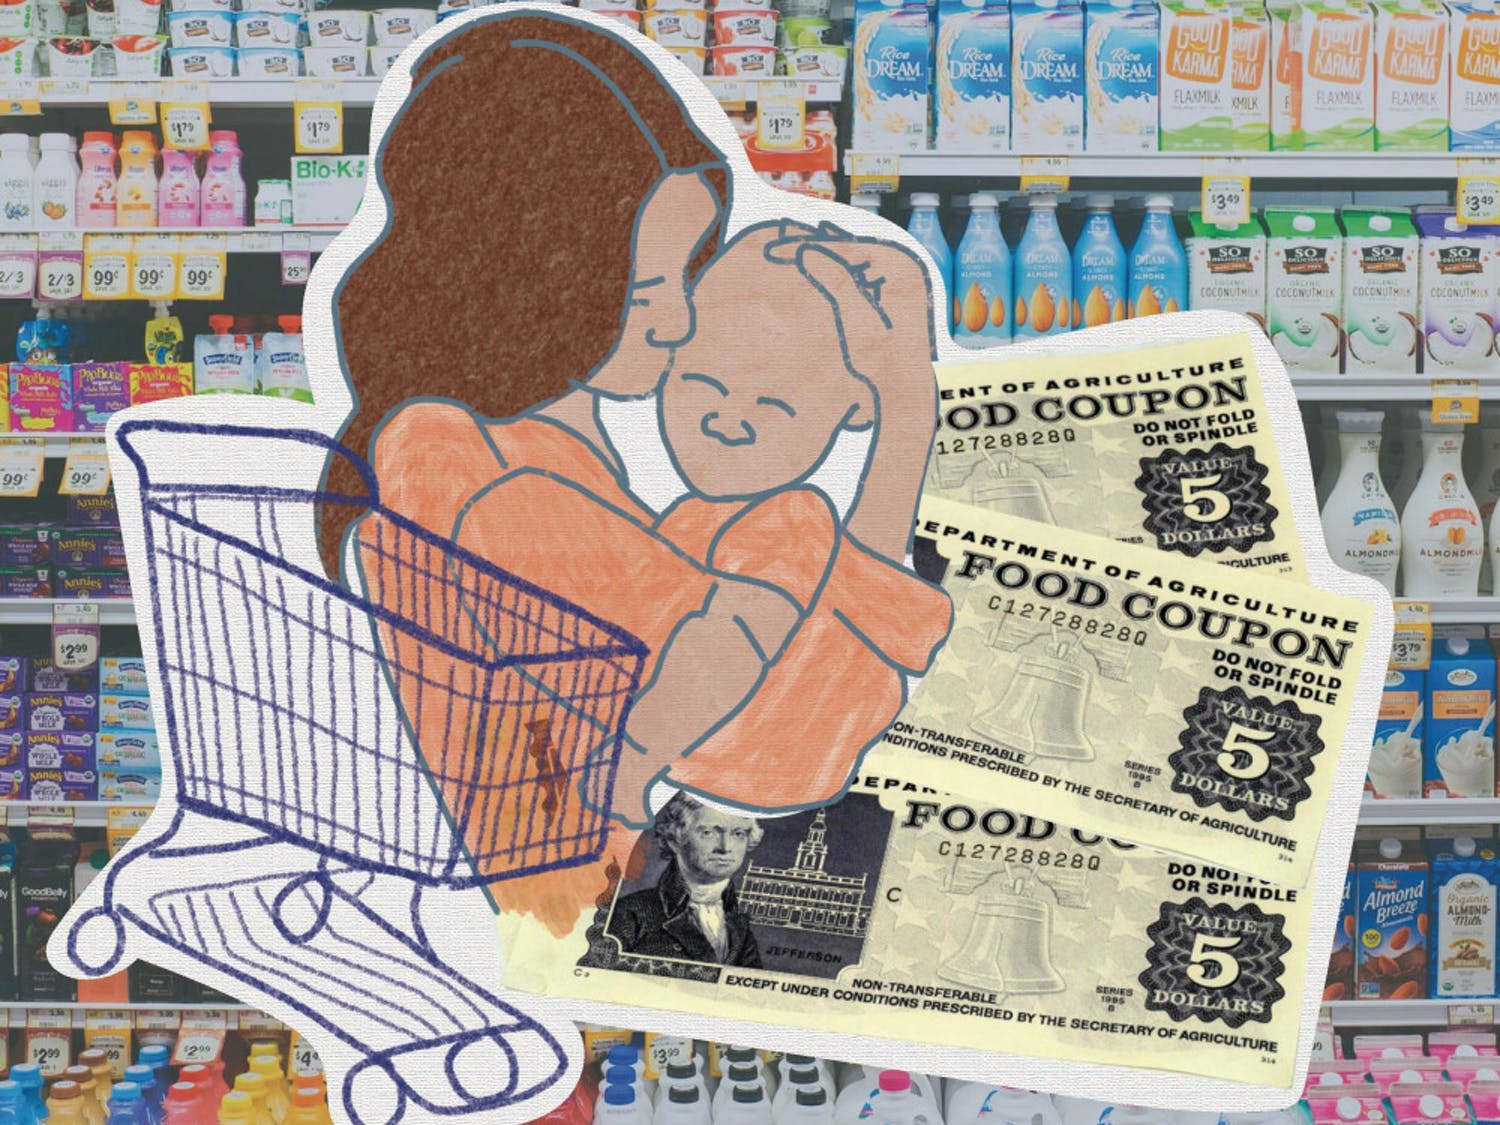 Graphic of food coupons and mother and child